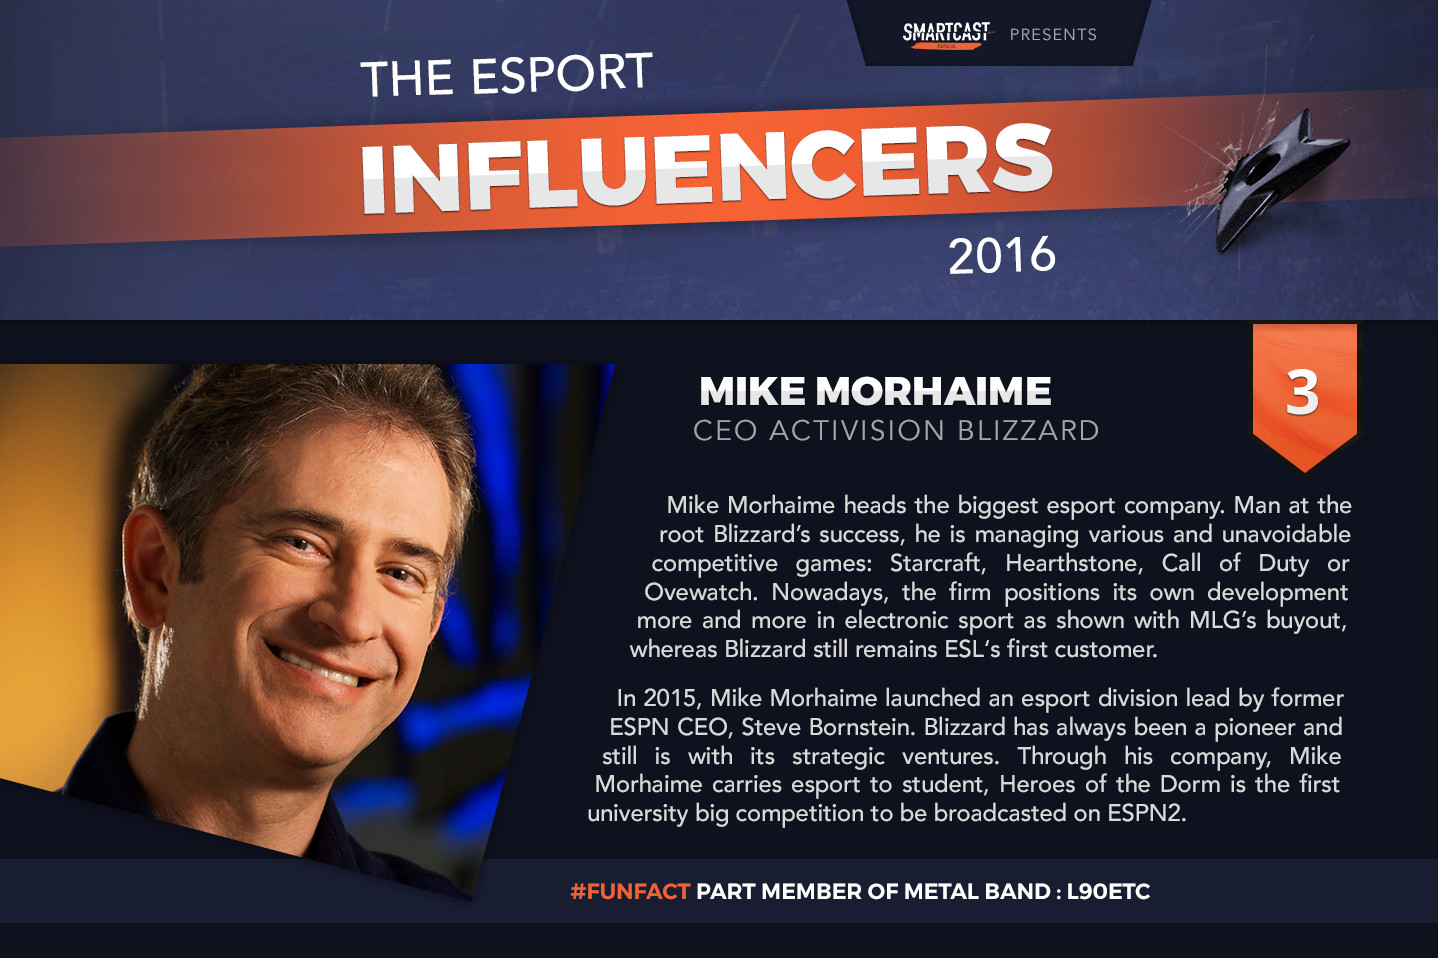 smartcast-influencer-esport-3-mike_morhaime-en